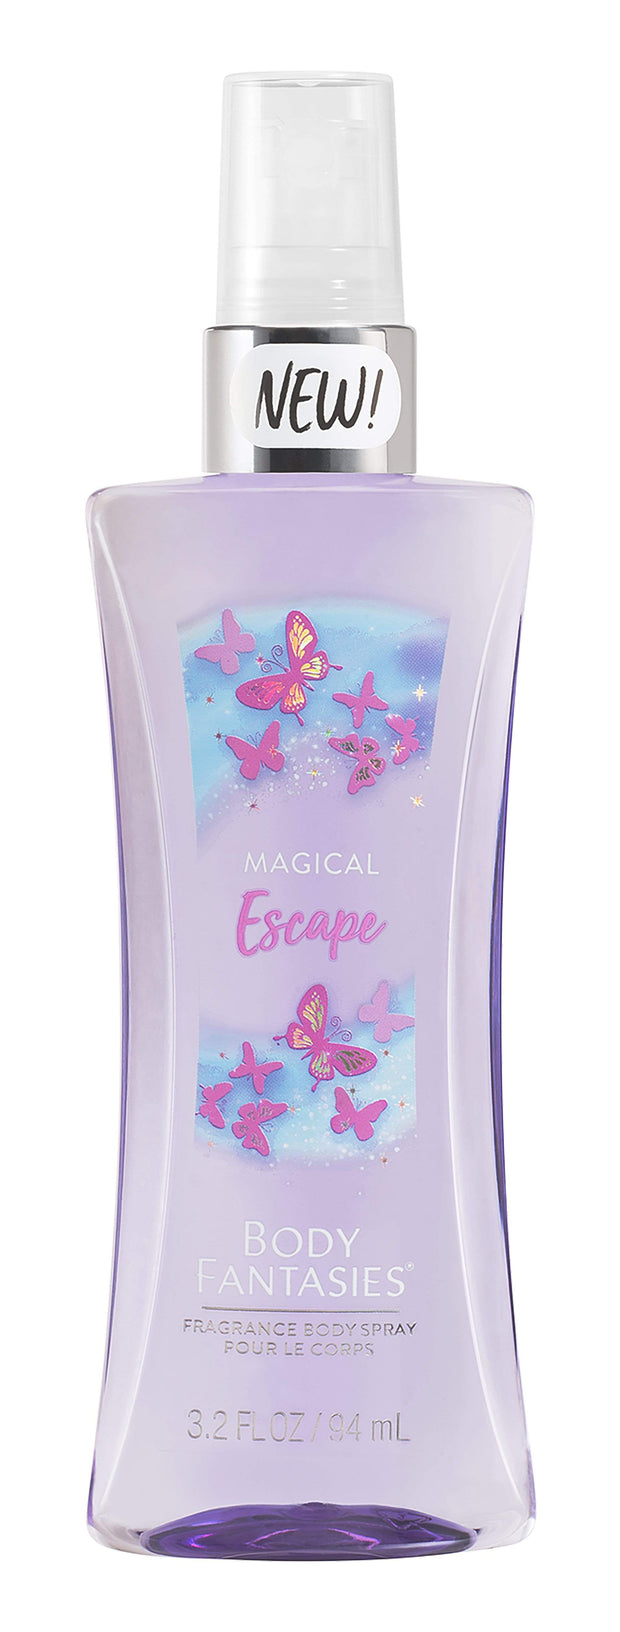 BODY FANTASIES Signature Magical Escape Body Spray 94ml4849 - Jashanmal Home